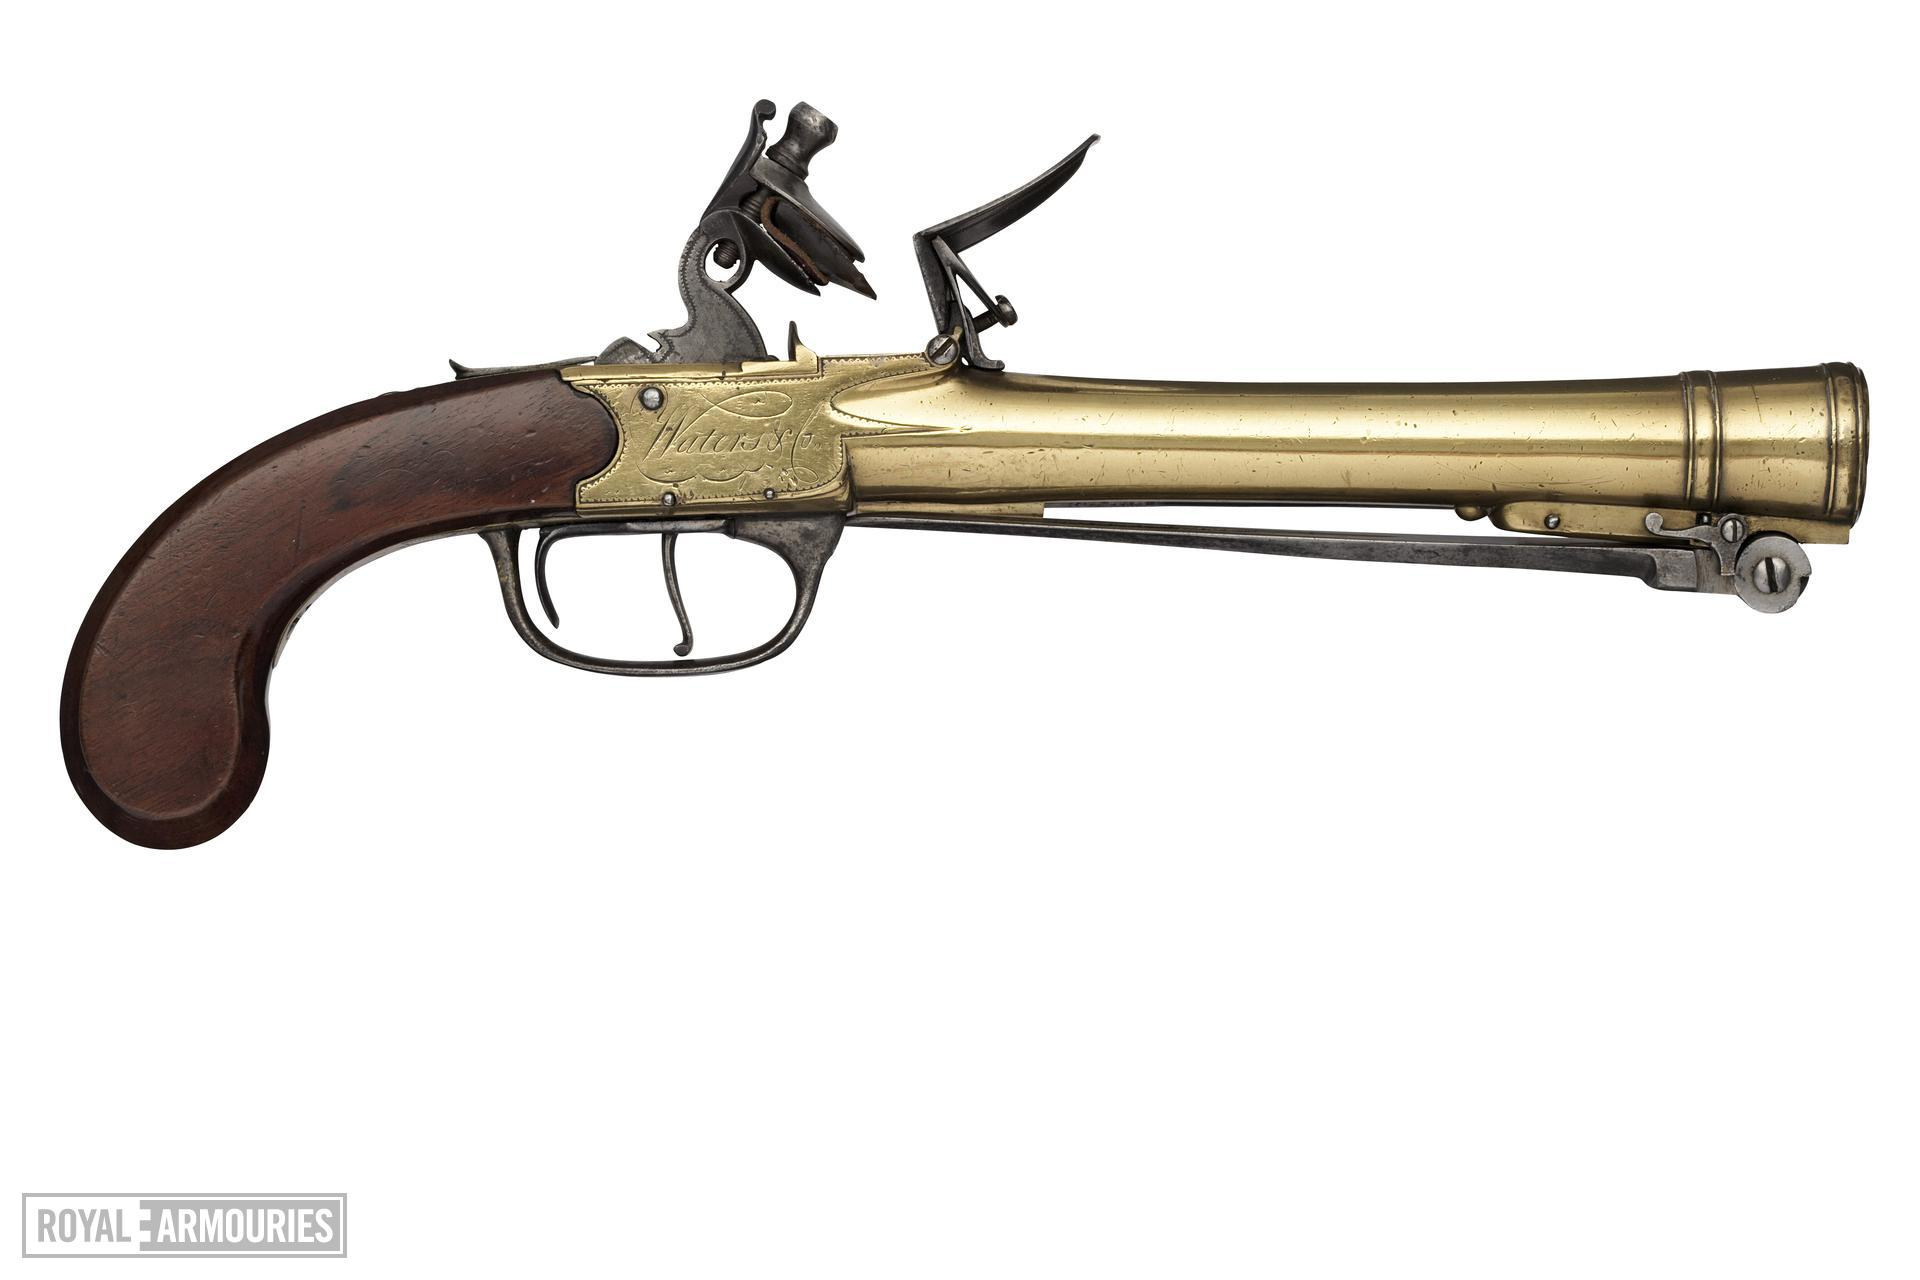 Flintlock blunderbuss pistol By Waters & Co